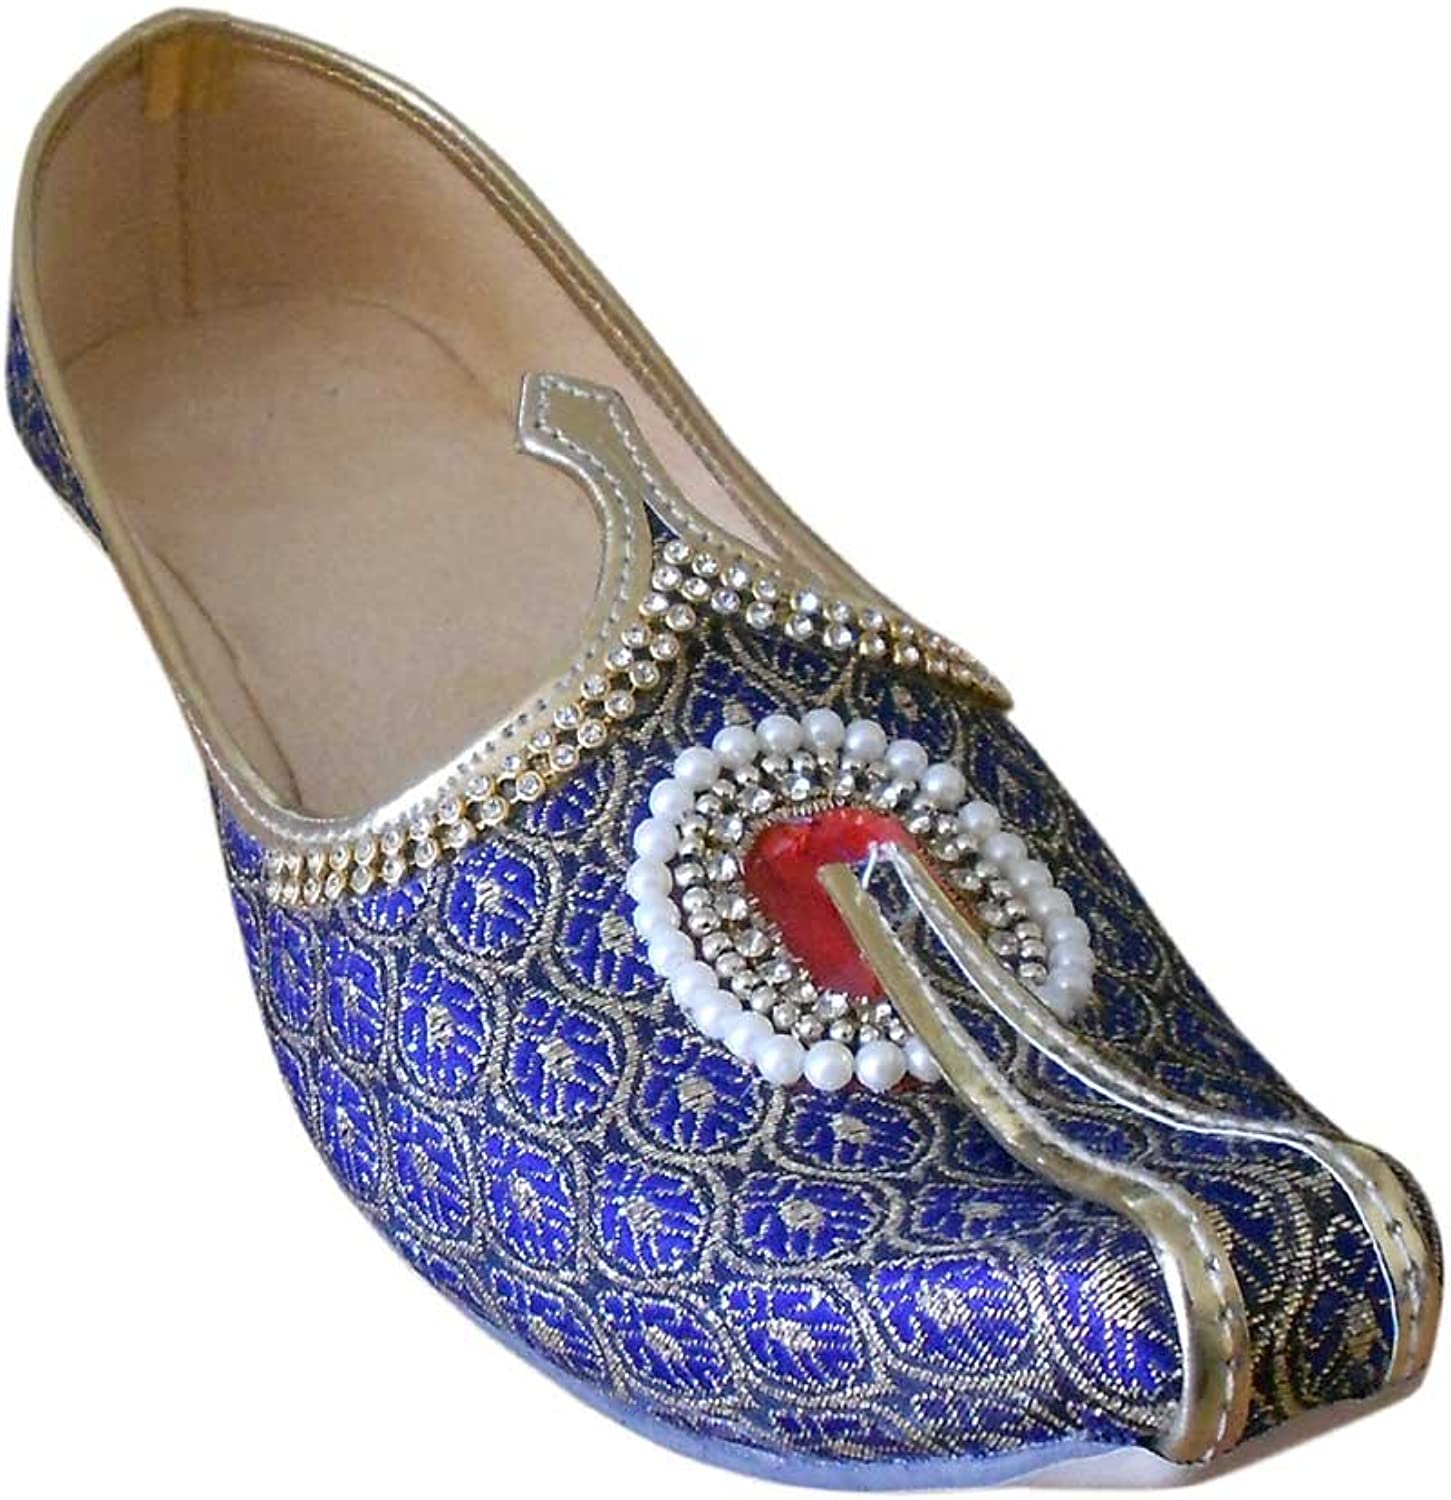 Kalra Creations Men's Jutti Traditional Indian Ethnic Wedding shoes